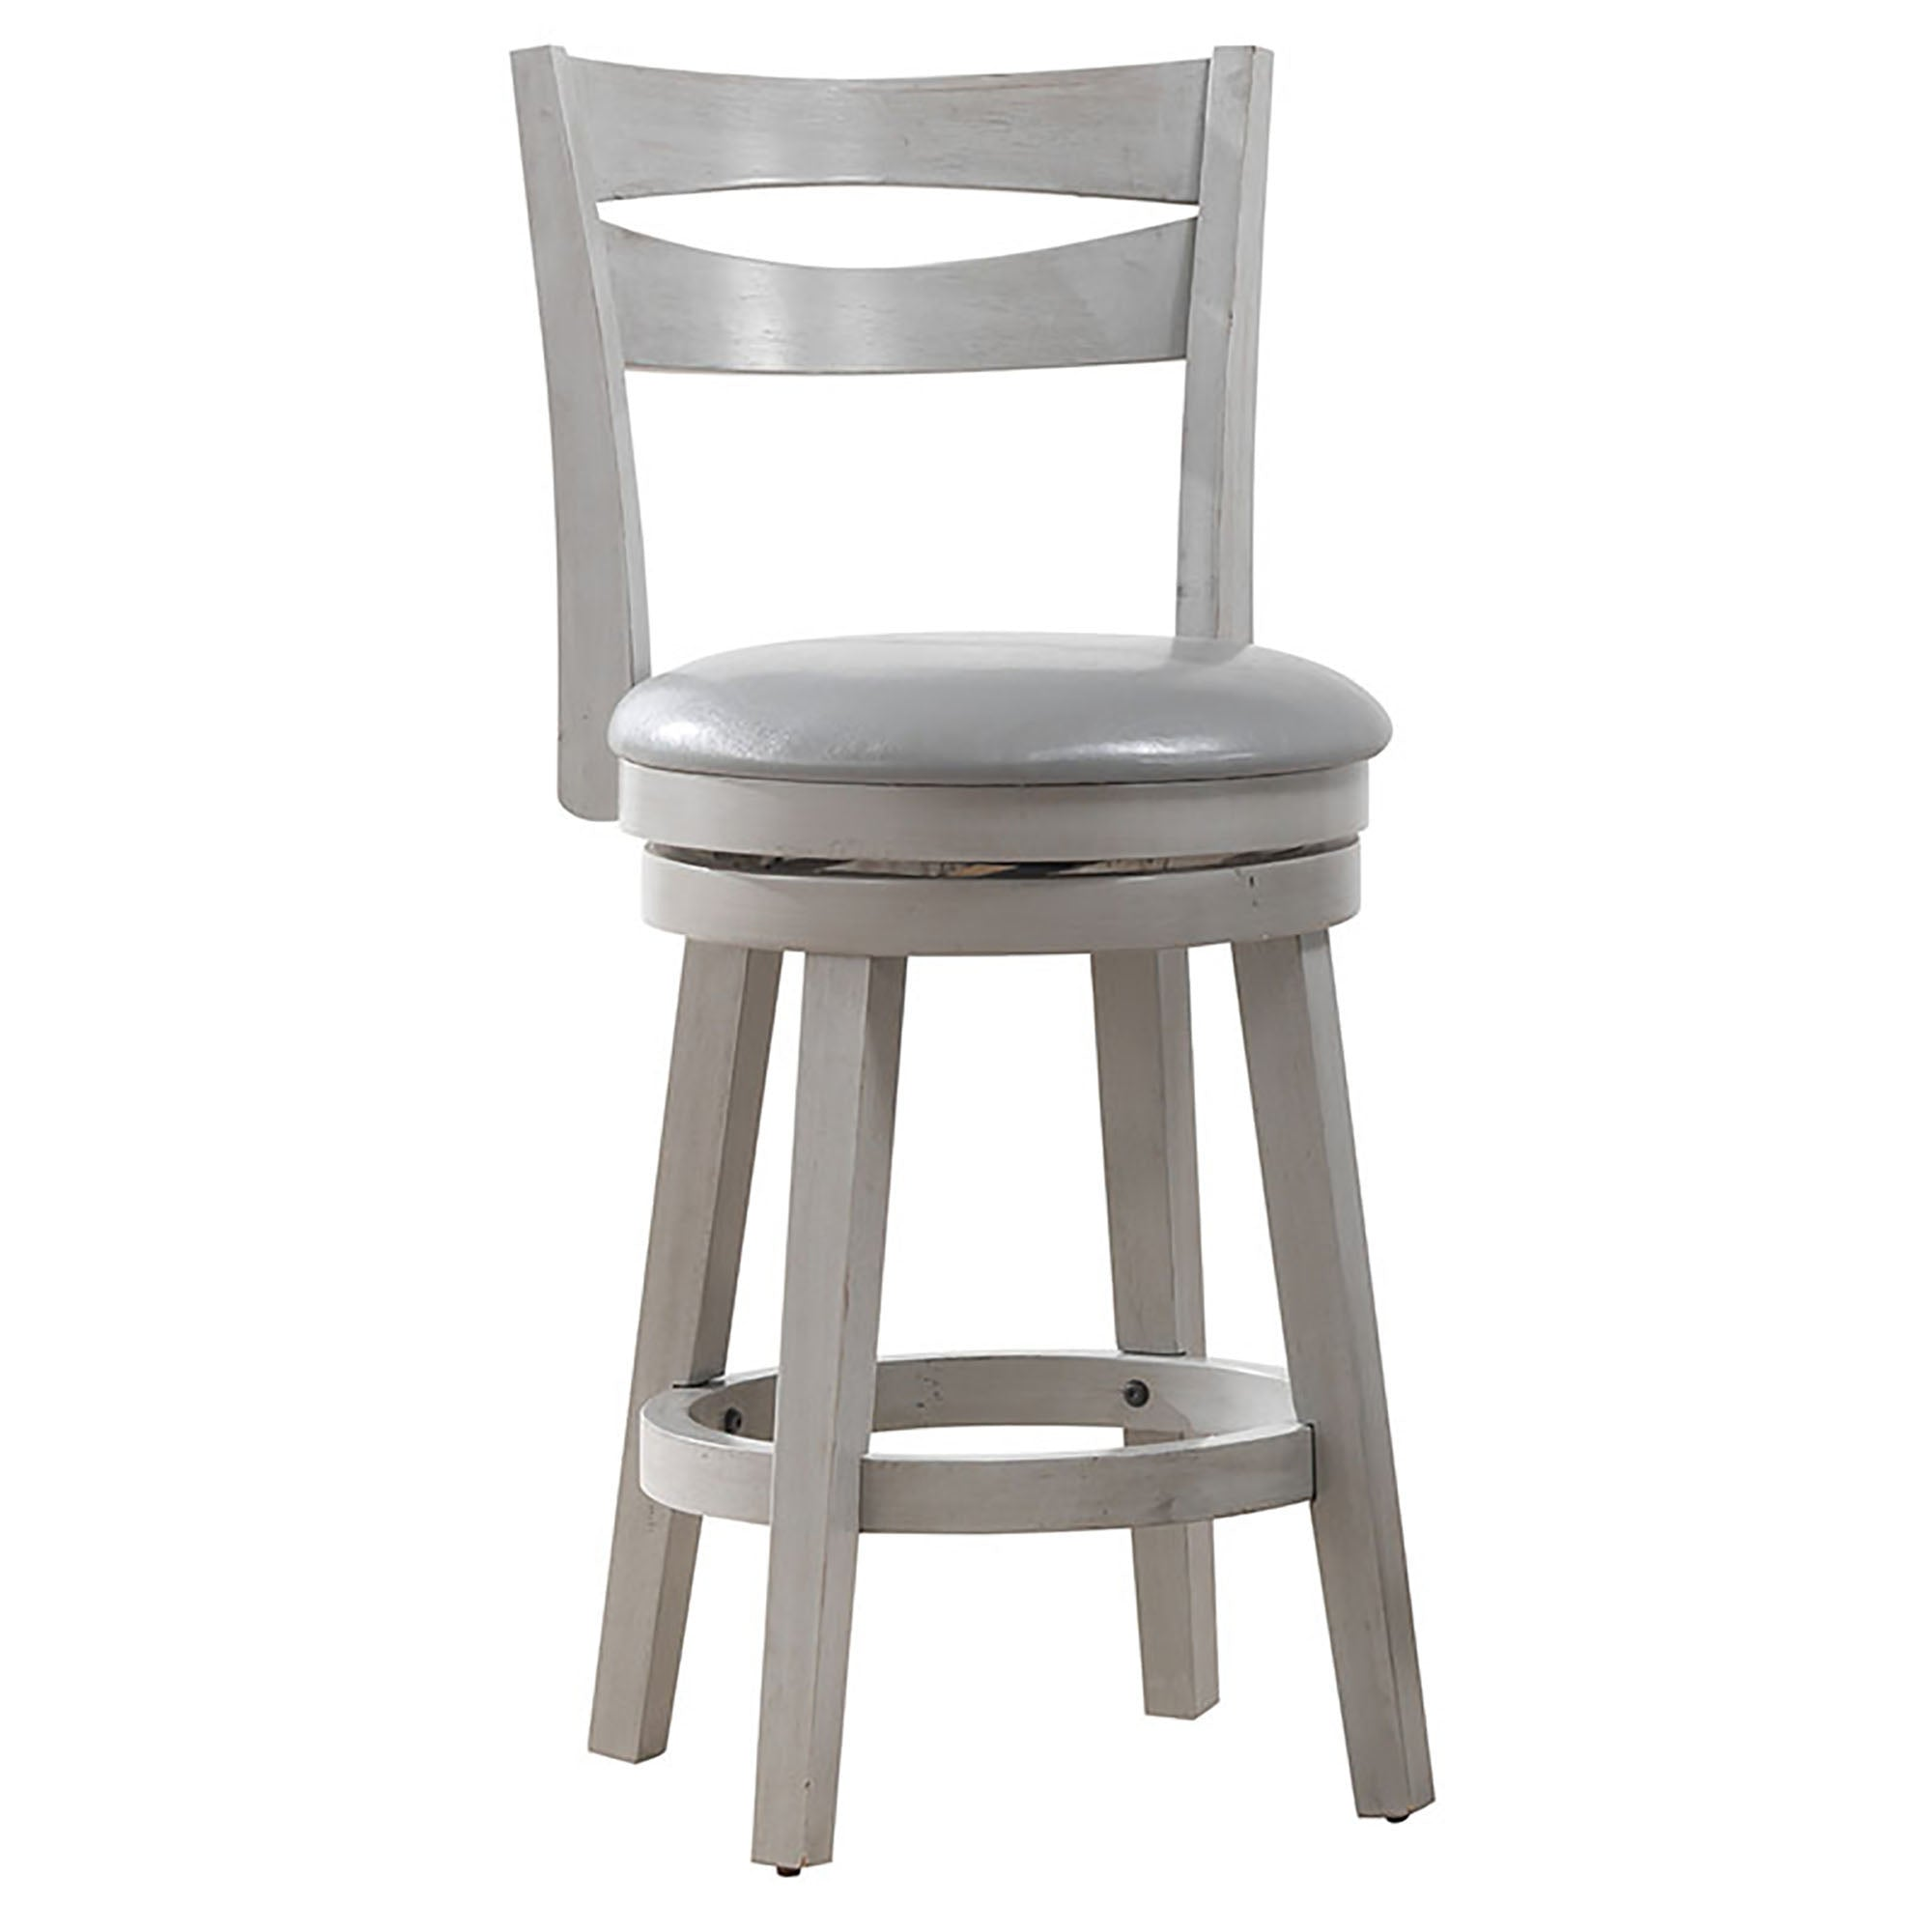 Harlo 26'' Counter Stool, set of 2 in Grey